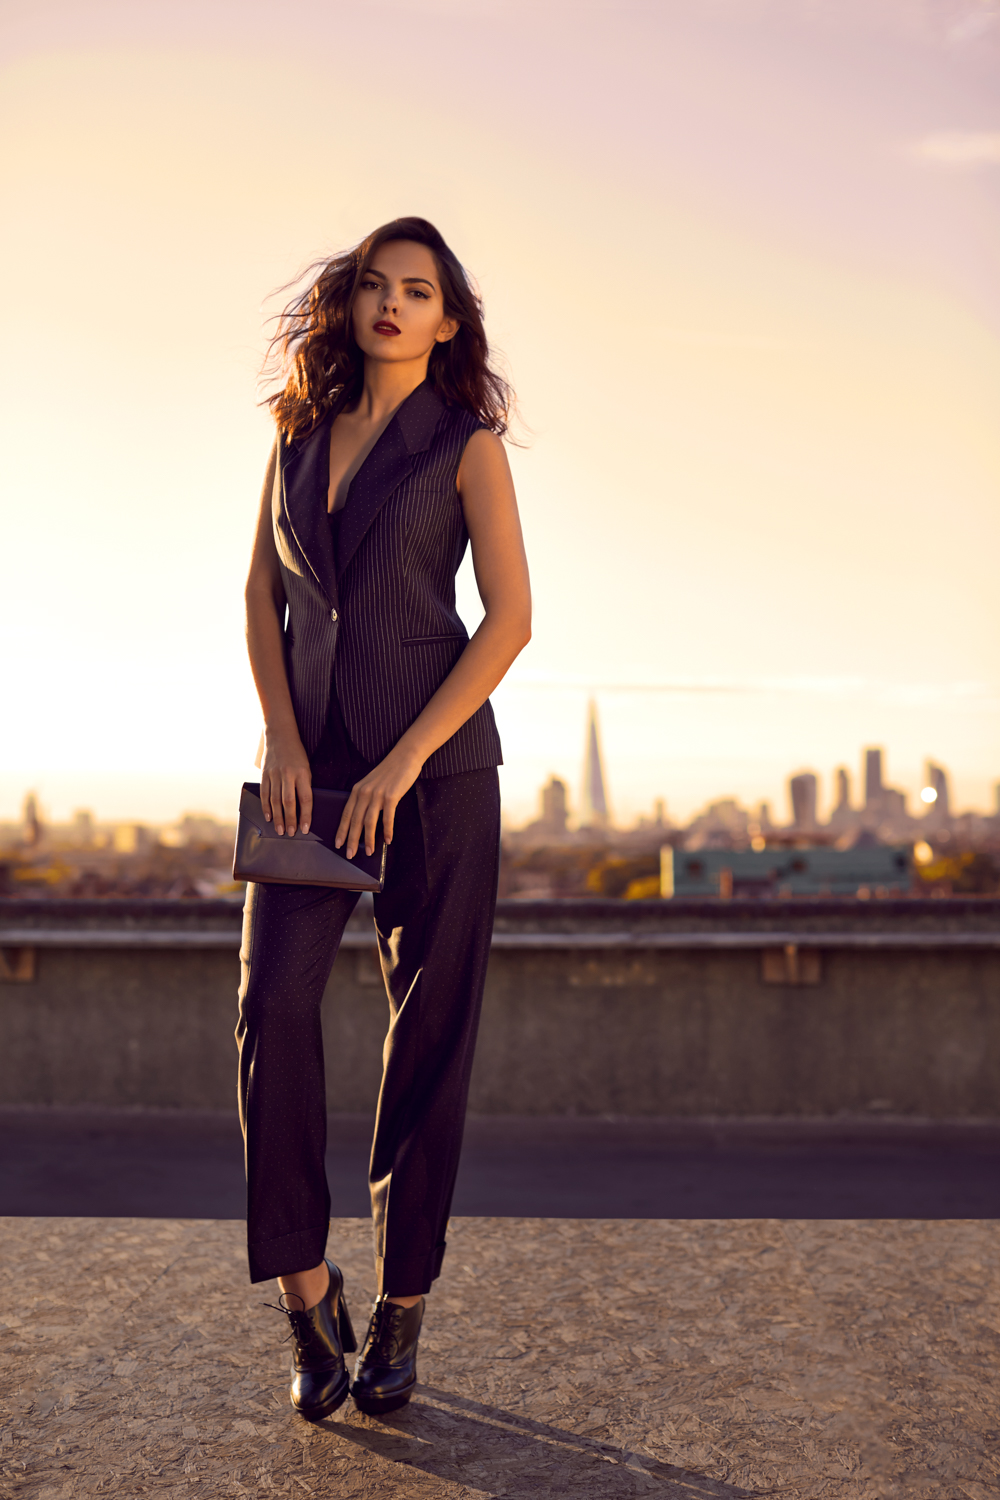 doina-ciobanu-paul-smith-campaign-13